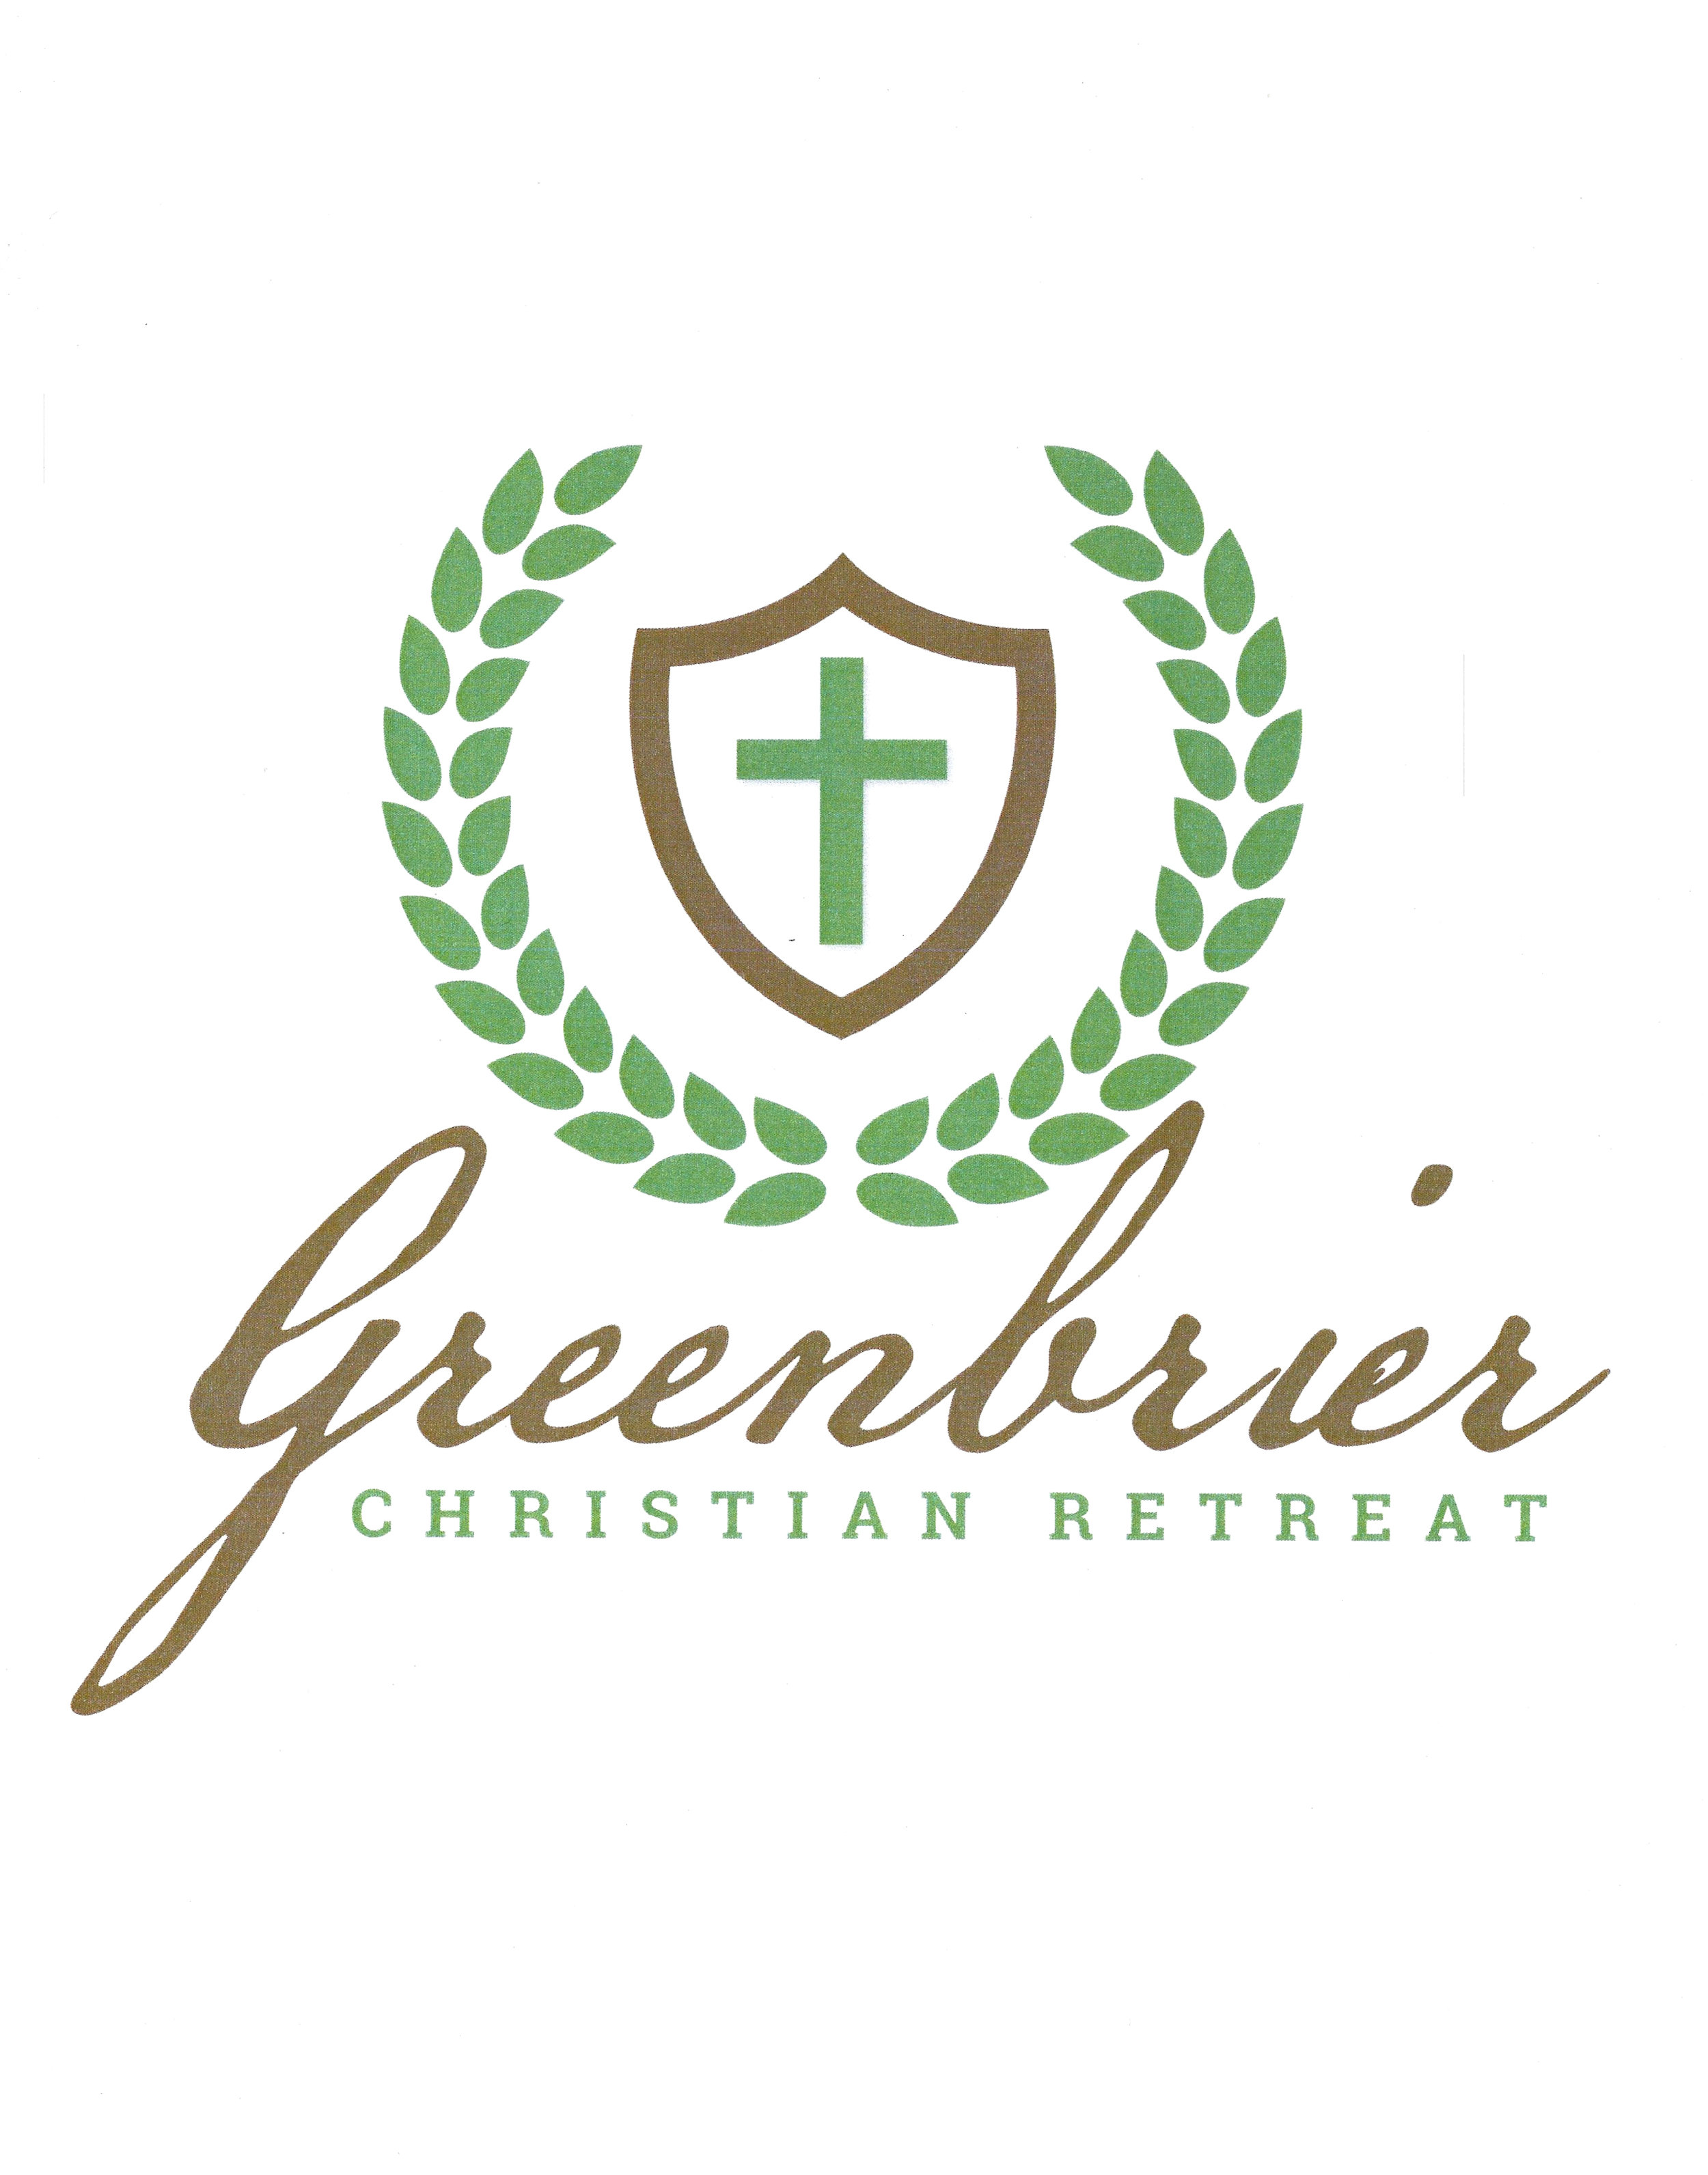 Greenbrier Christian Retreat - USE THIS ONE.jpg